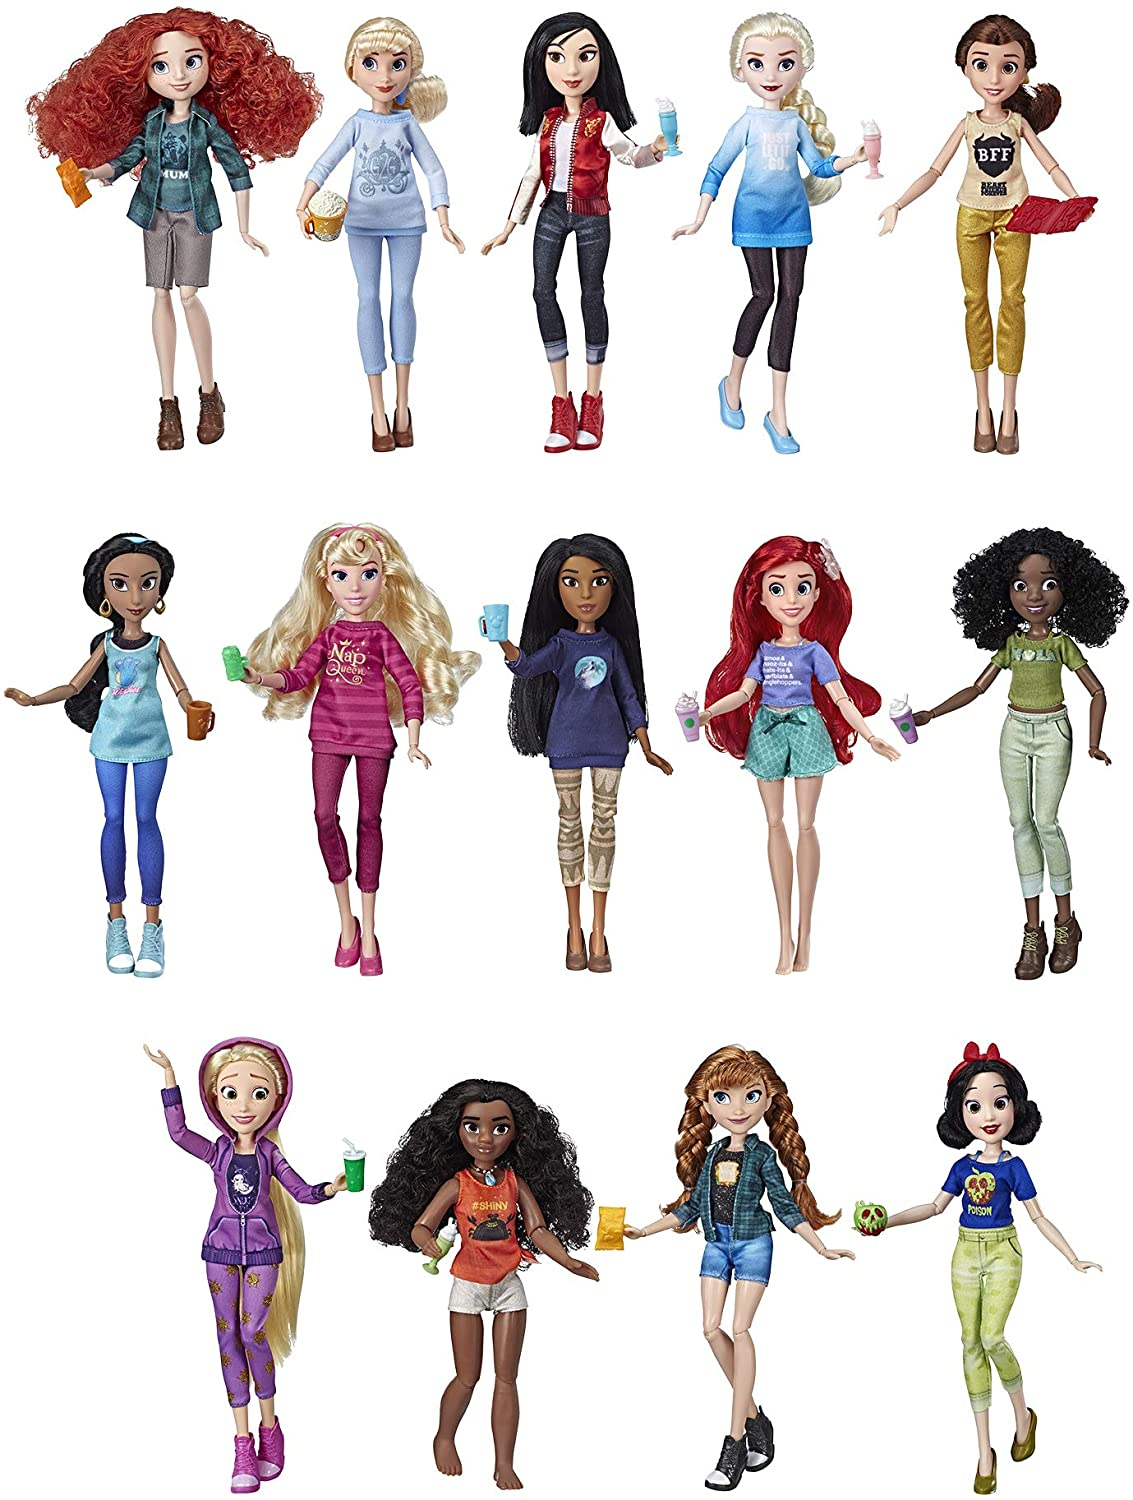 Amazon Com Disney Princess Ralph Breaks The Internet Movie Dolls With Comfy Clothes Accessories 14 Doll Ultimate Multipack Amazon Exclusive Toys Games